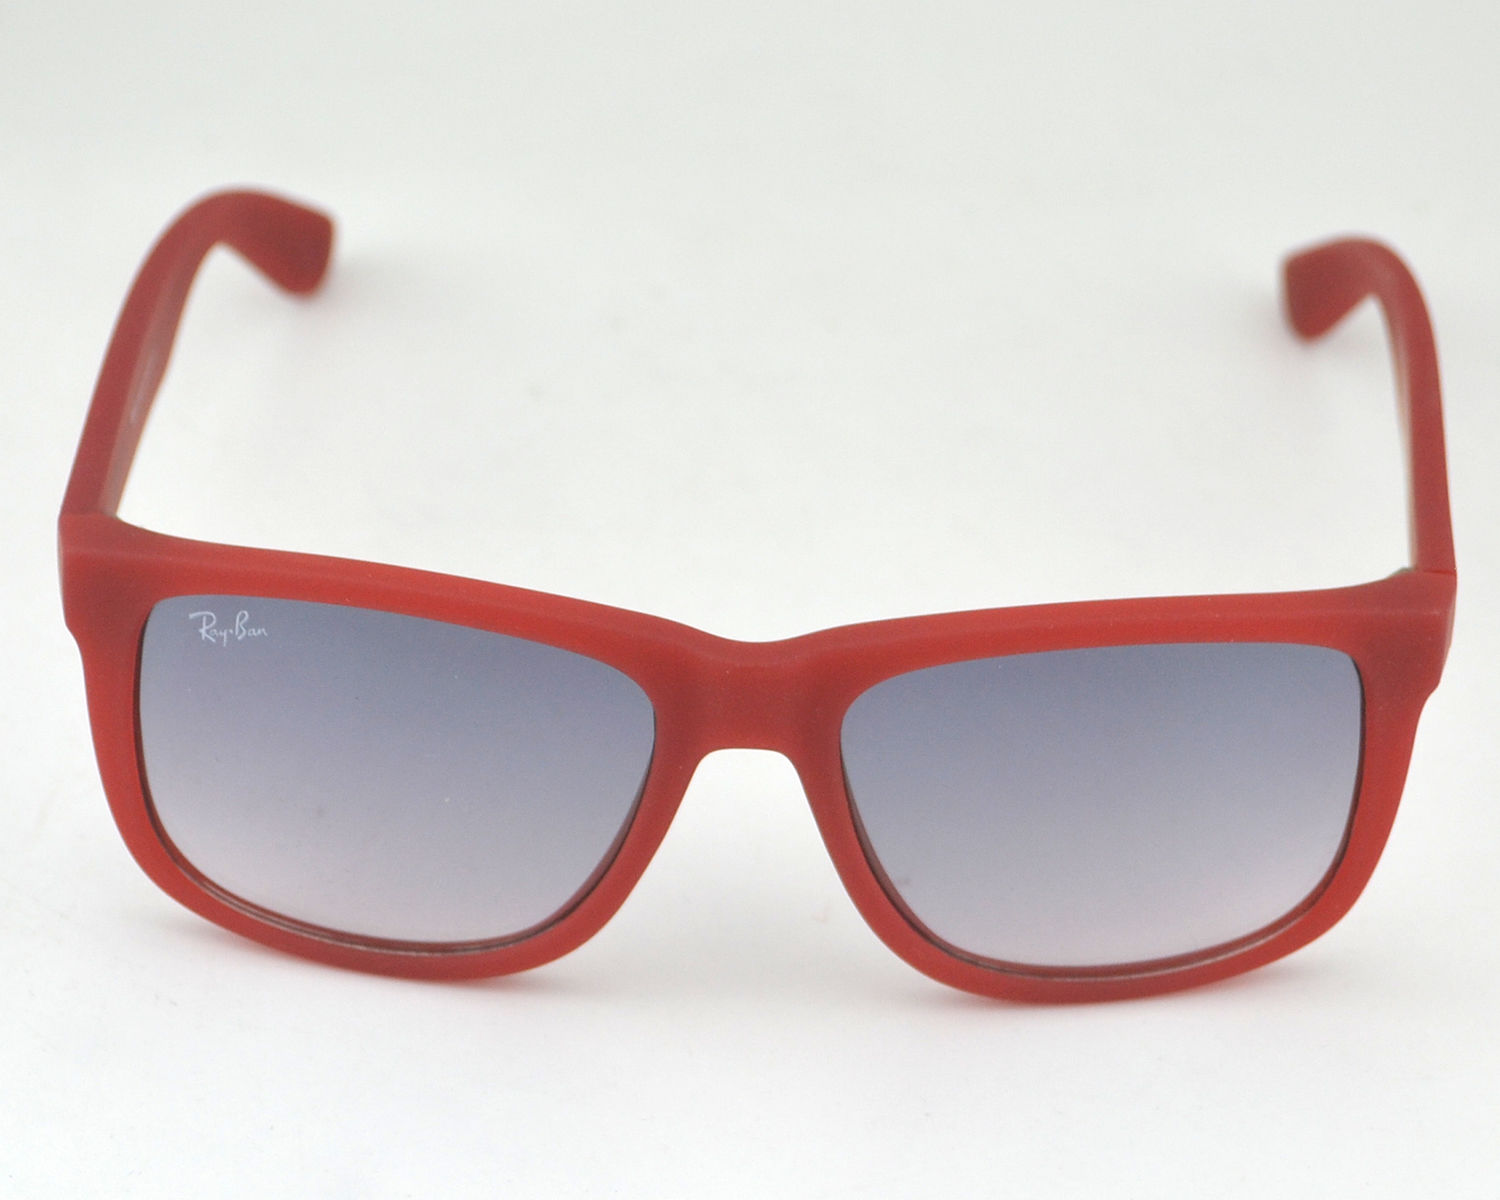 a87a03d24c7 Ray-Ban RB 4165 Justin Classic 6003 5G Red Frame Light Blue Glass Lens  Unisex Sunglasses 53mm